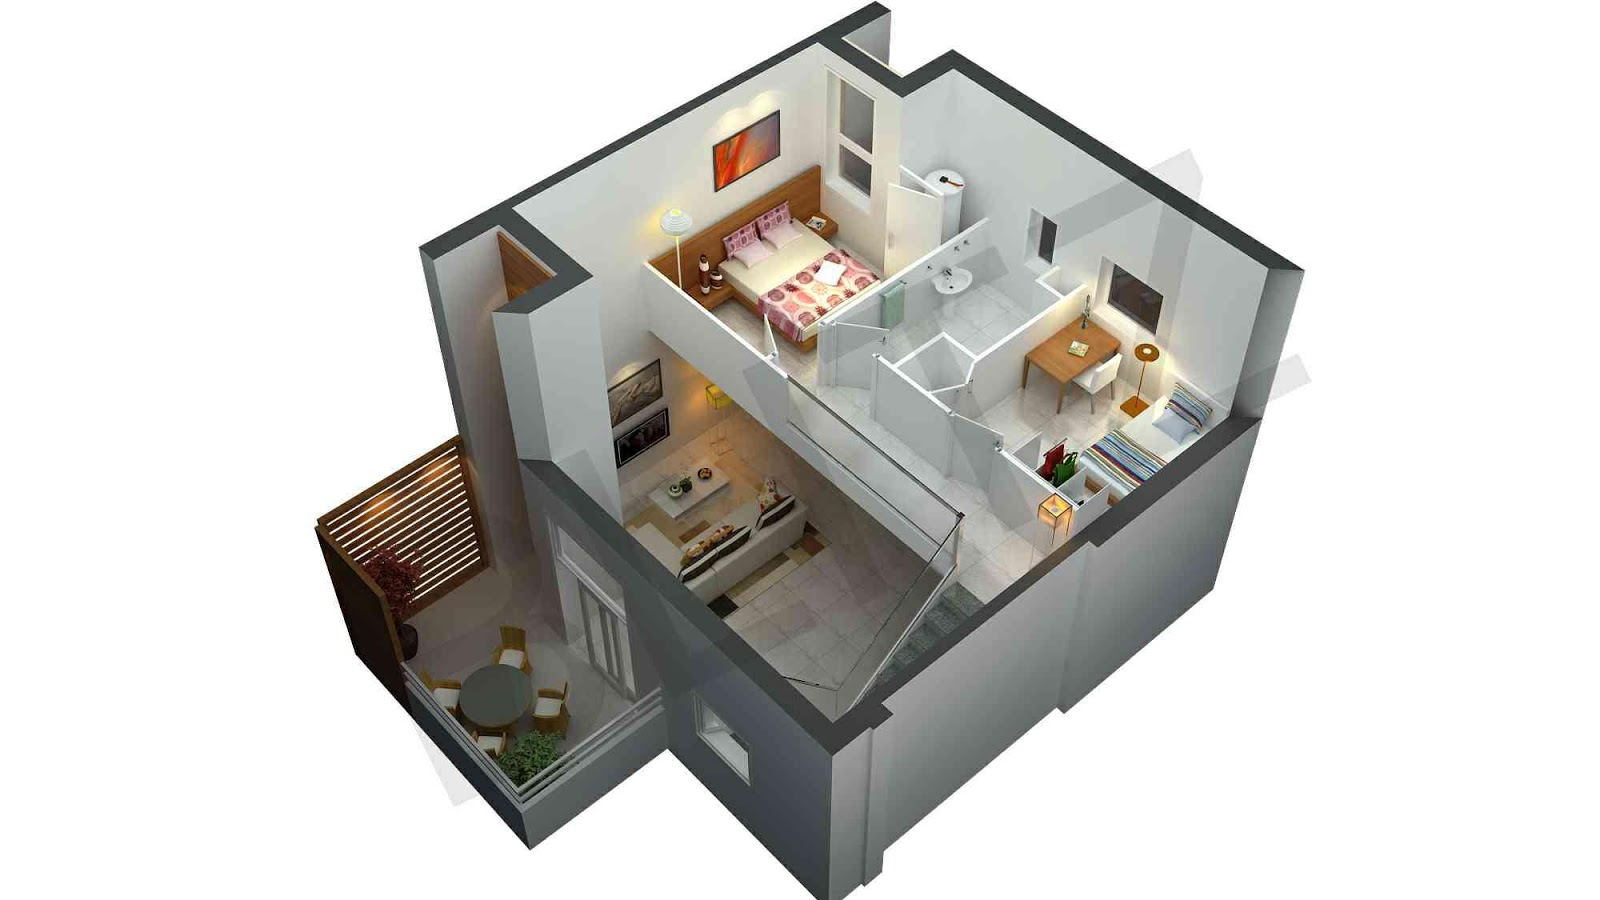 3D Home Plan Designs  screenshot. 3D Home Plan Designs   Android Apps on Google Play